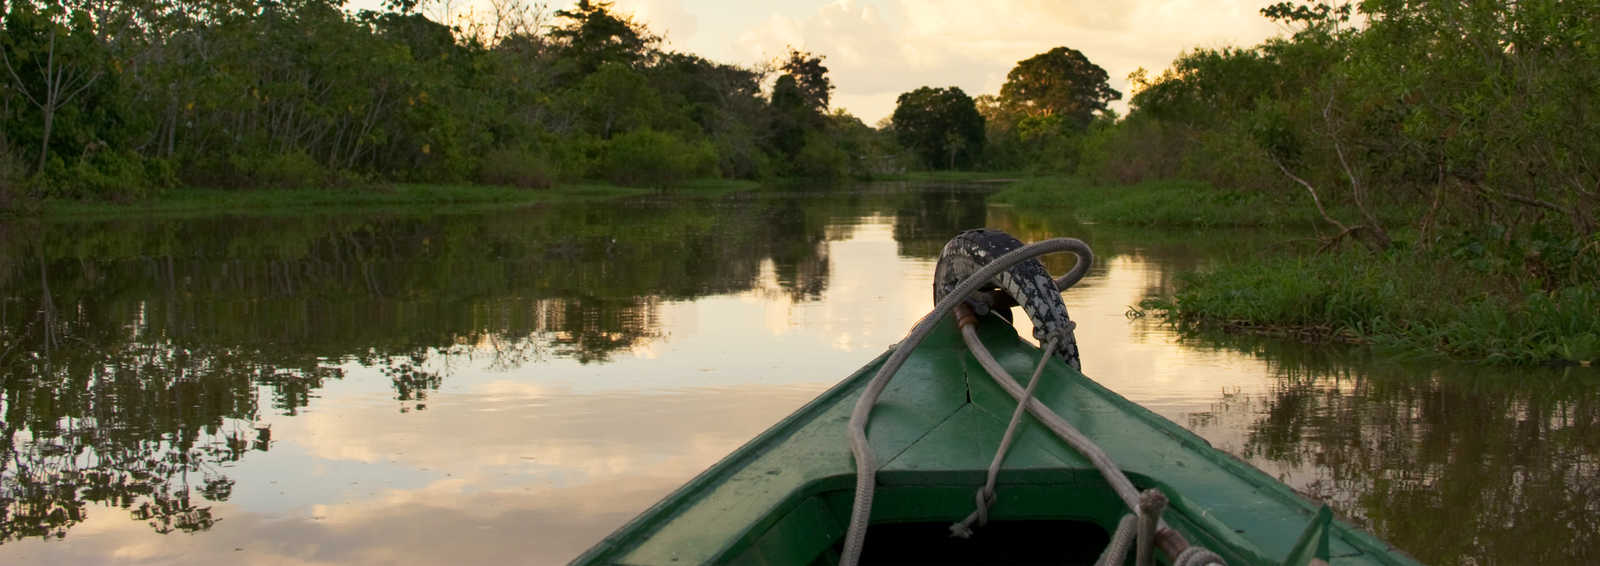 A small boat is sailing through the Amazon forest in Brazil at sunset